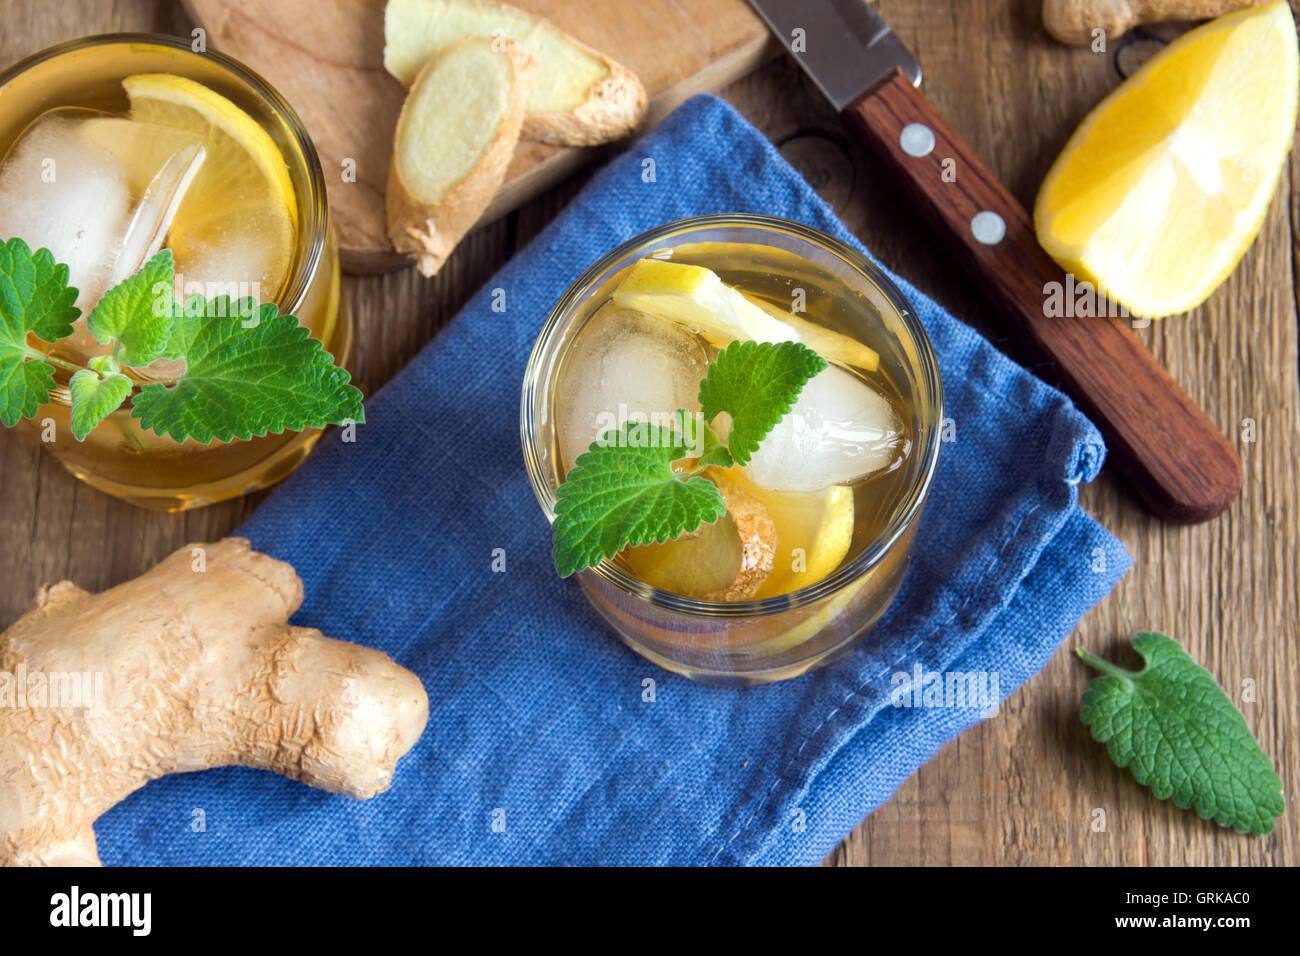 Ginger ale soda with lemon, mint, ginger and ice over rustic wooden background - Stock Image